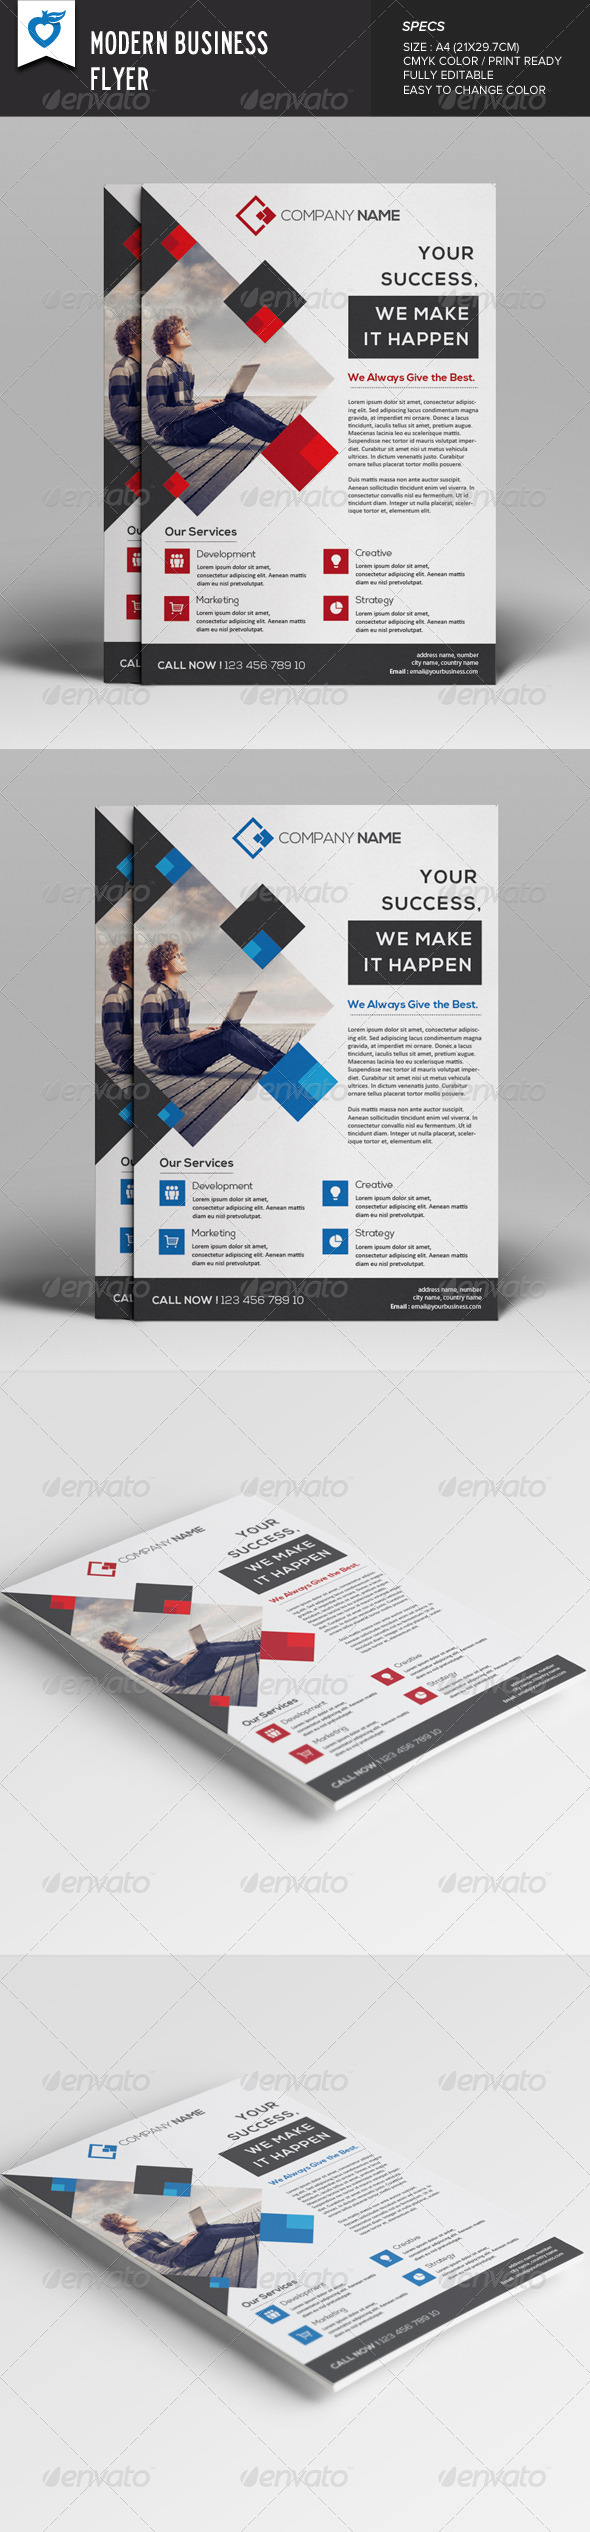 GraphicRiver Modern Business Flyer 7978347